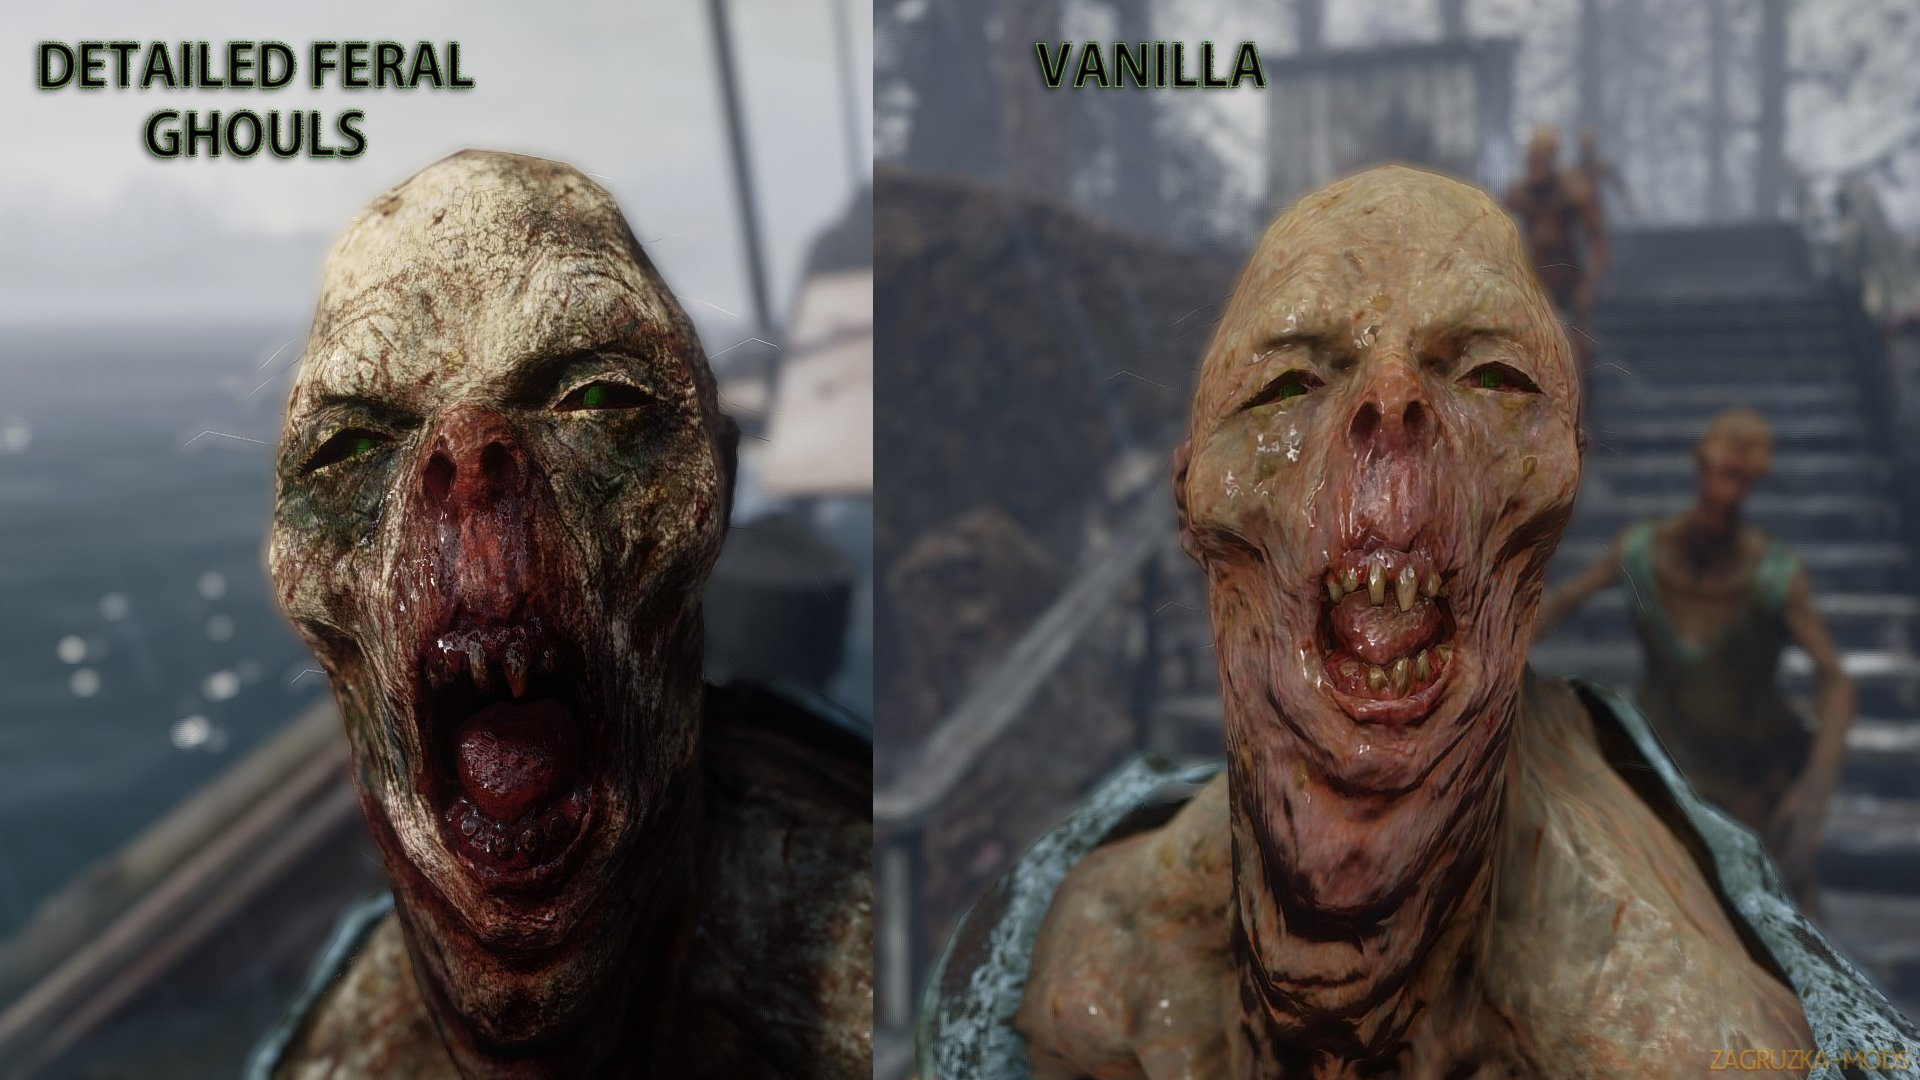 Detailed Texture Feral Ghouls v1.0 for Fallout 4